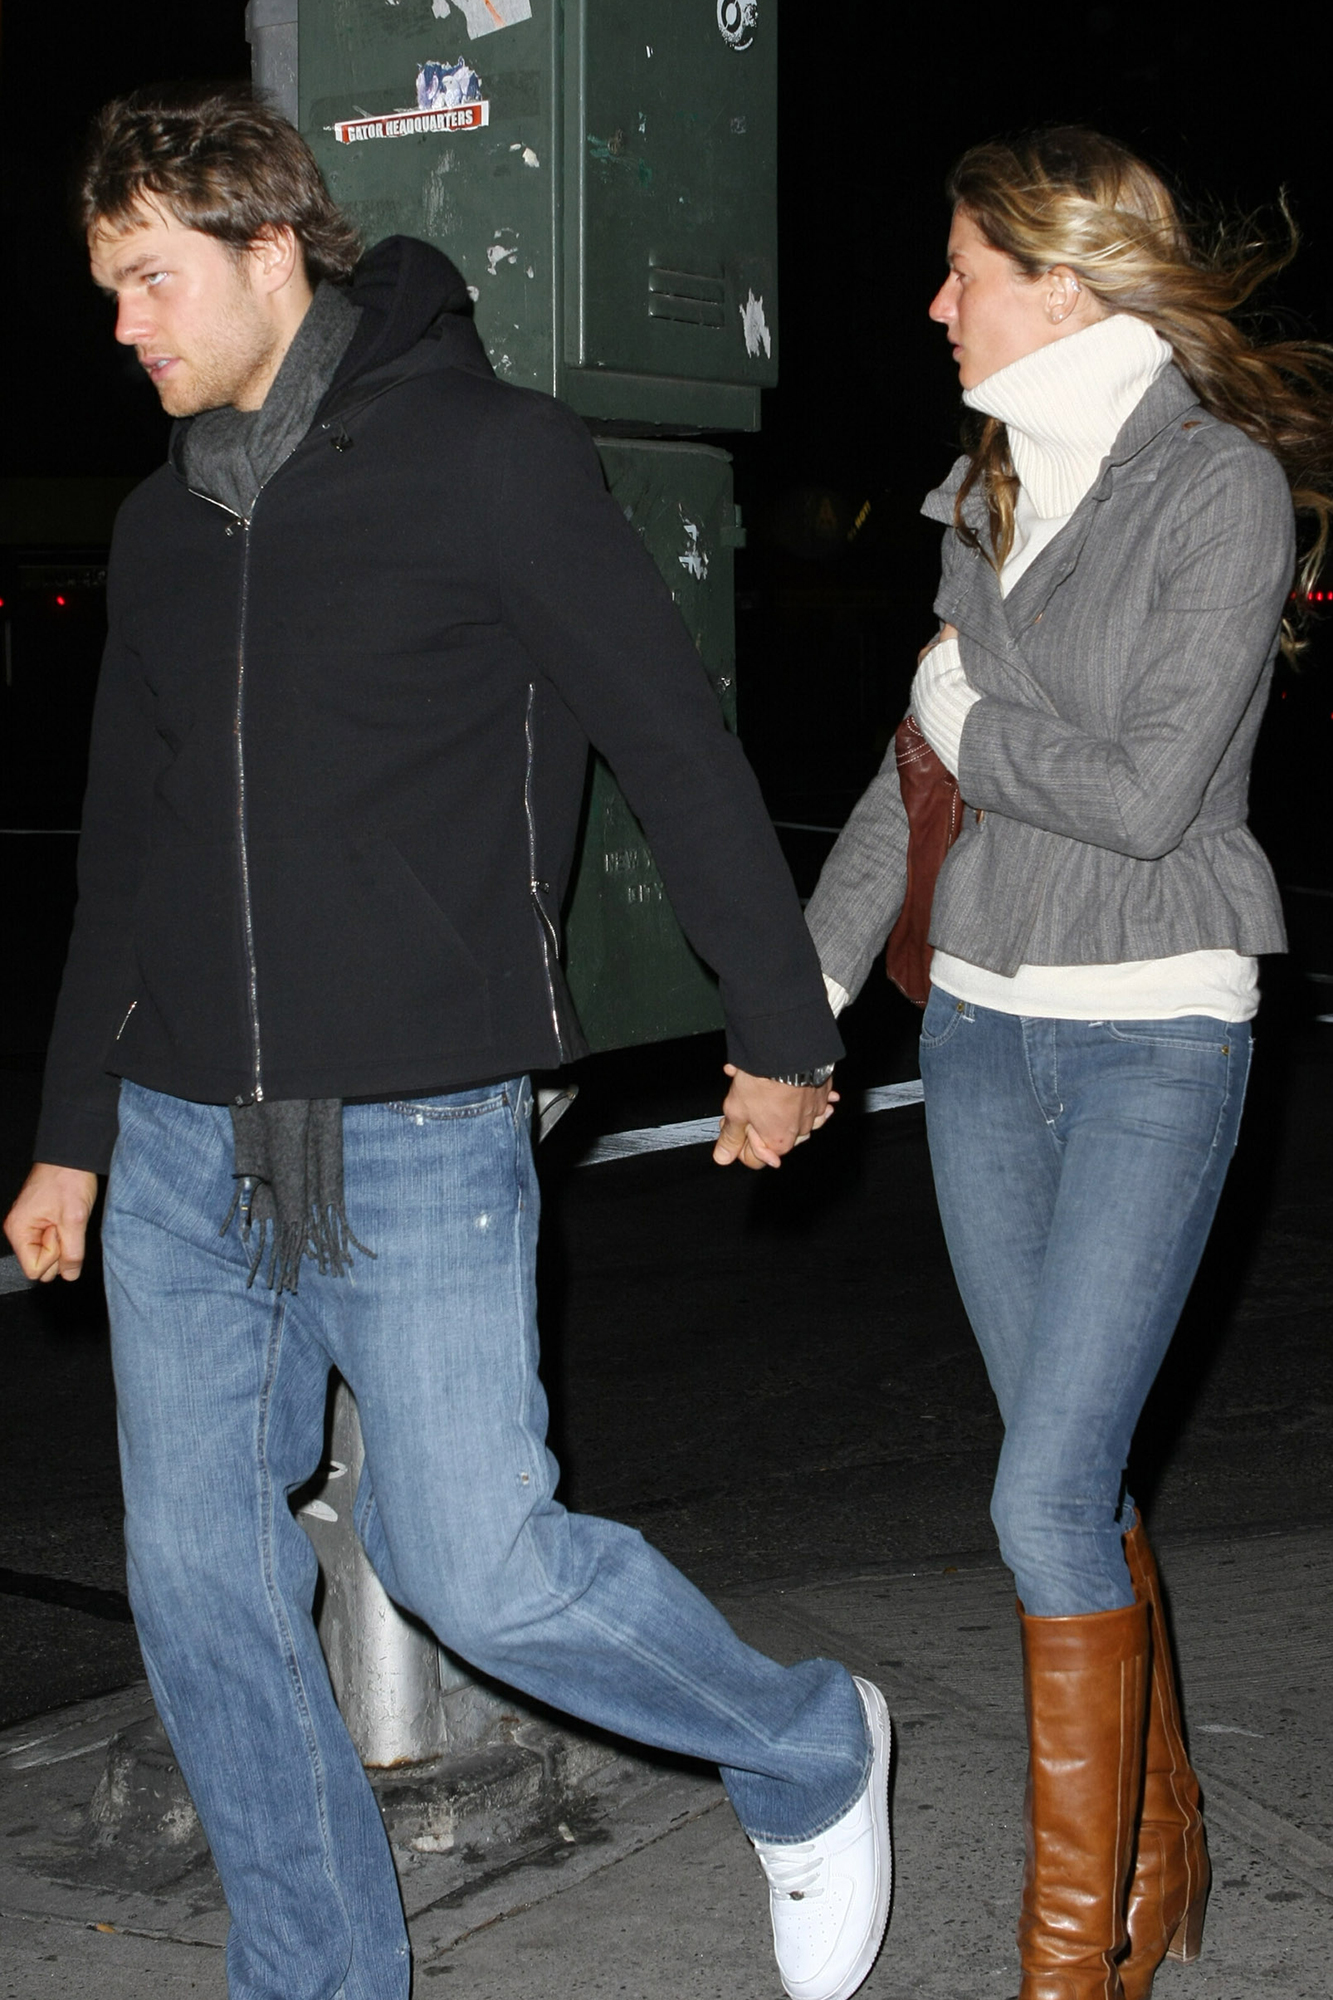 Tom Brady and Gisele Bundchen: A Timeline of Their Relationship - The twosome faced their first public relationship roadblock in February 2007 after news broke the football player was expecting a child with his ex-girlfriend Bridget Moynahan. (Brady and Moynahan dated from 2004 to 2006.)